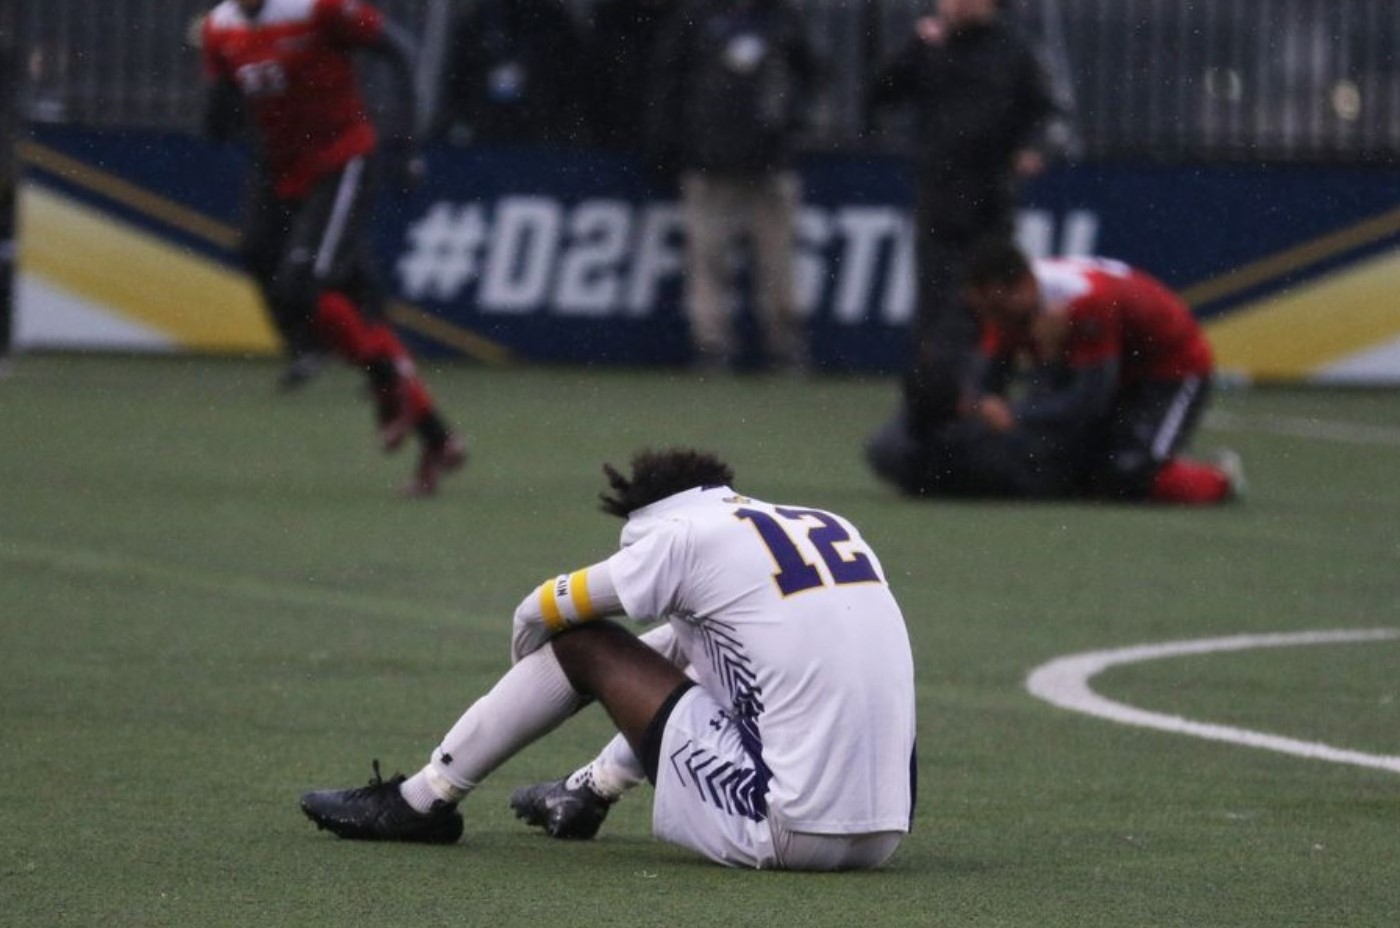 WCU Men's Soccer Team's Cinderella Season Ends in Heartbreak in National Title Game